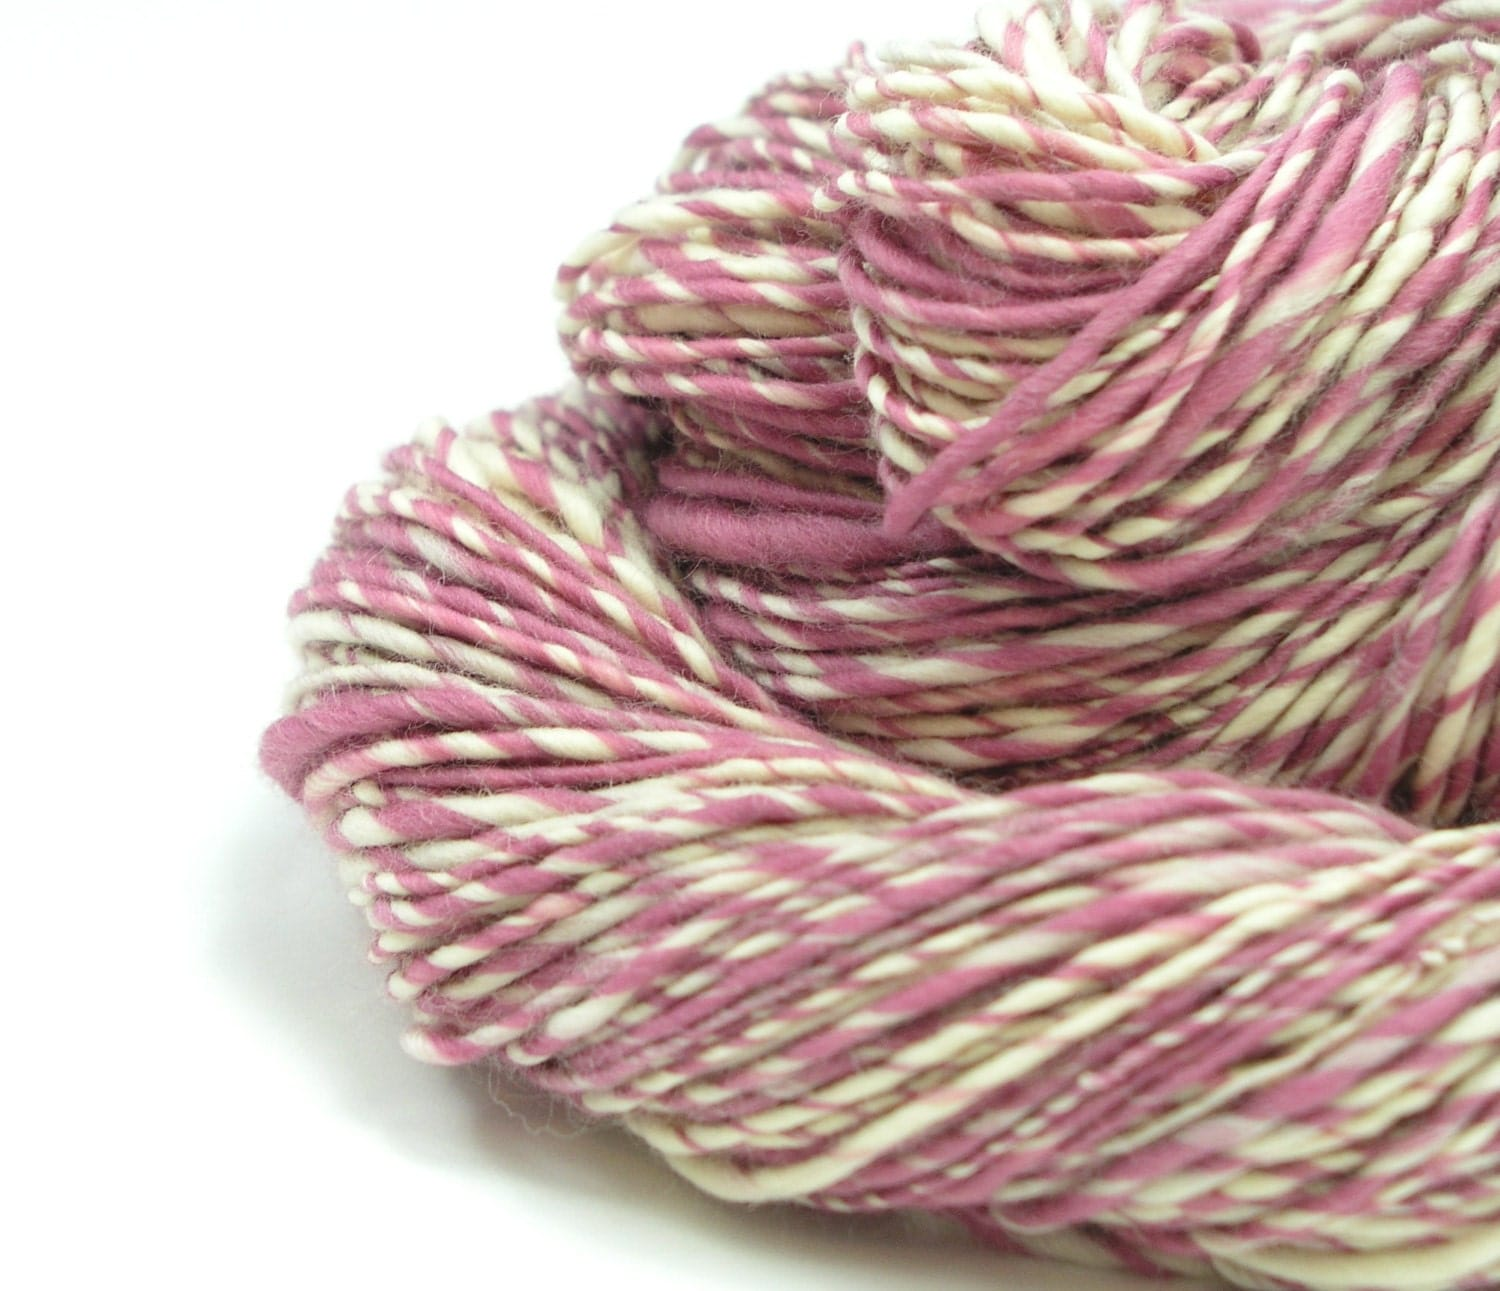 Worsted Weight Yarn : Worsted Weight Yarn Handspun Yarn Merino Yarn by TheSavvyStitch